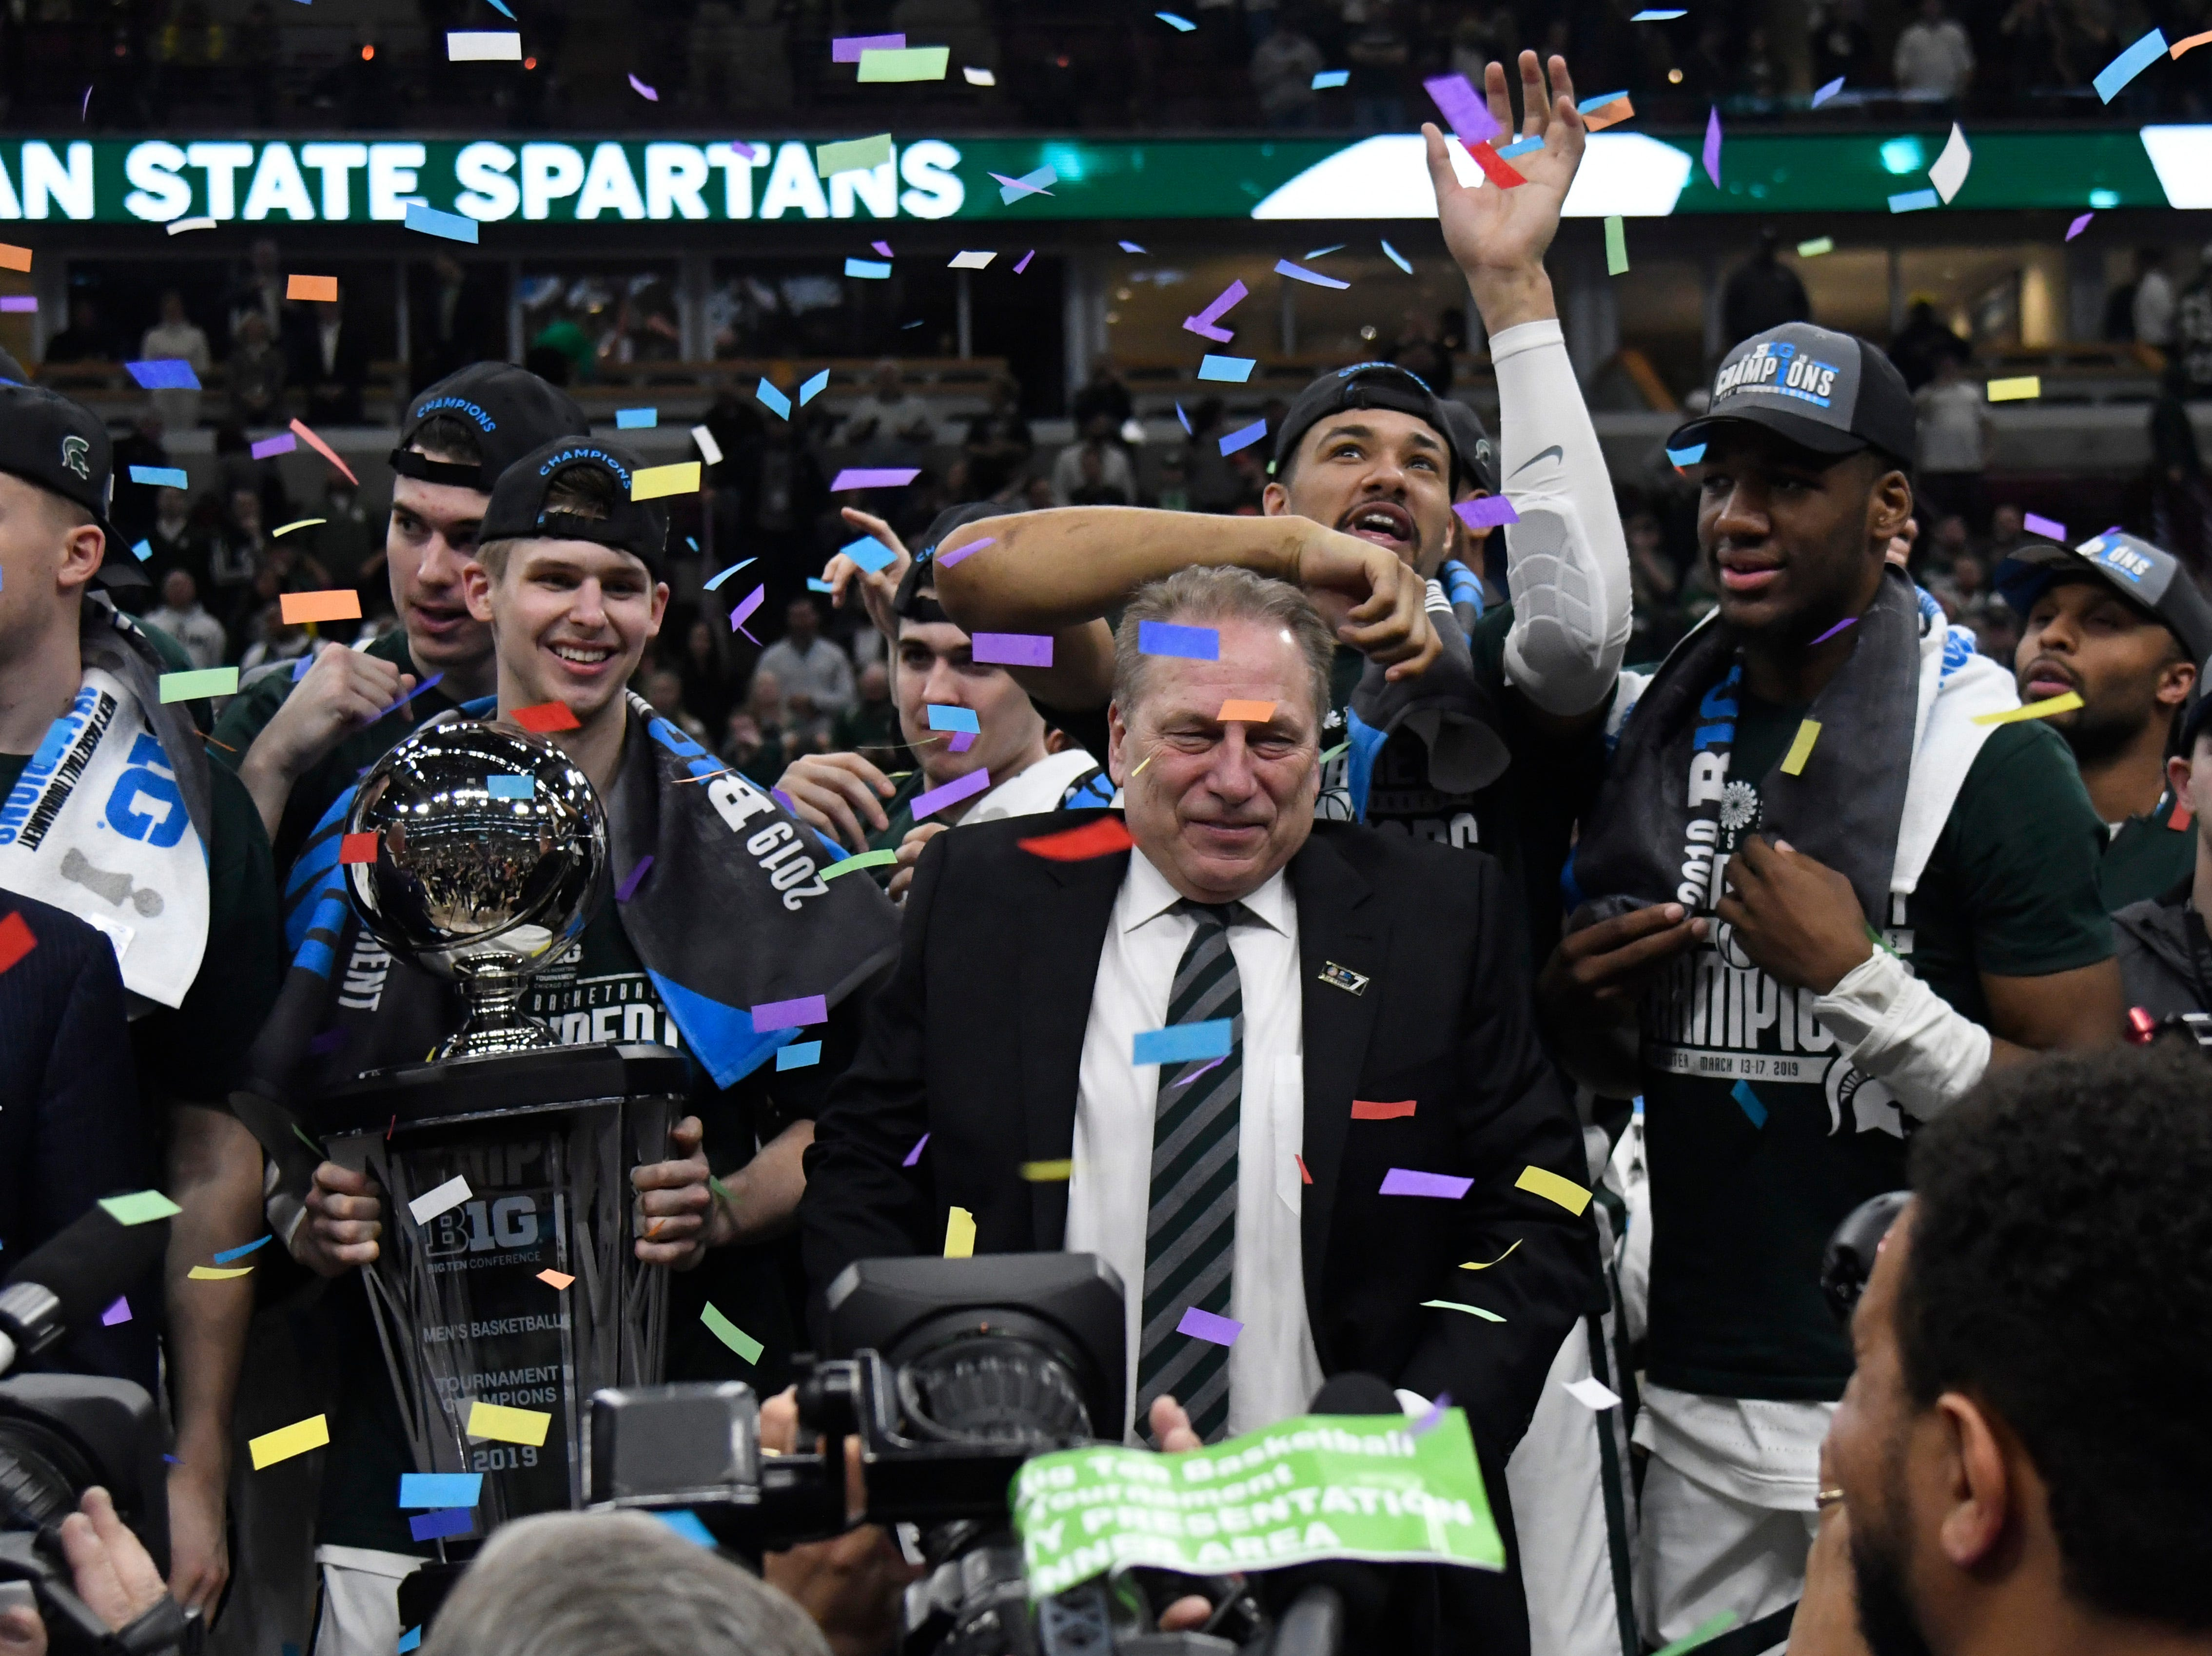 Michigan State (28-6), No. 2 seed in East, Big Ten Conference champion